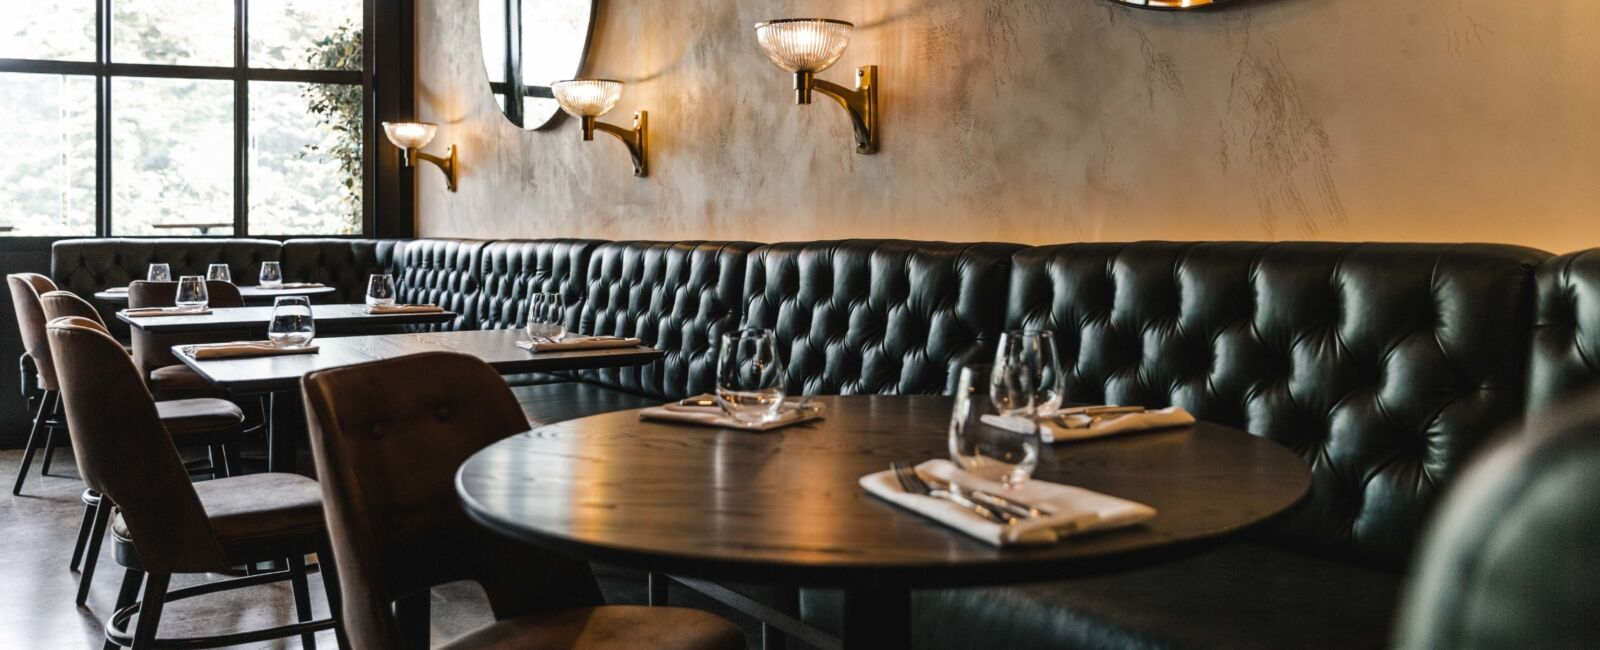 Sophisticated moody hues at New York Grill